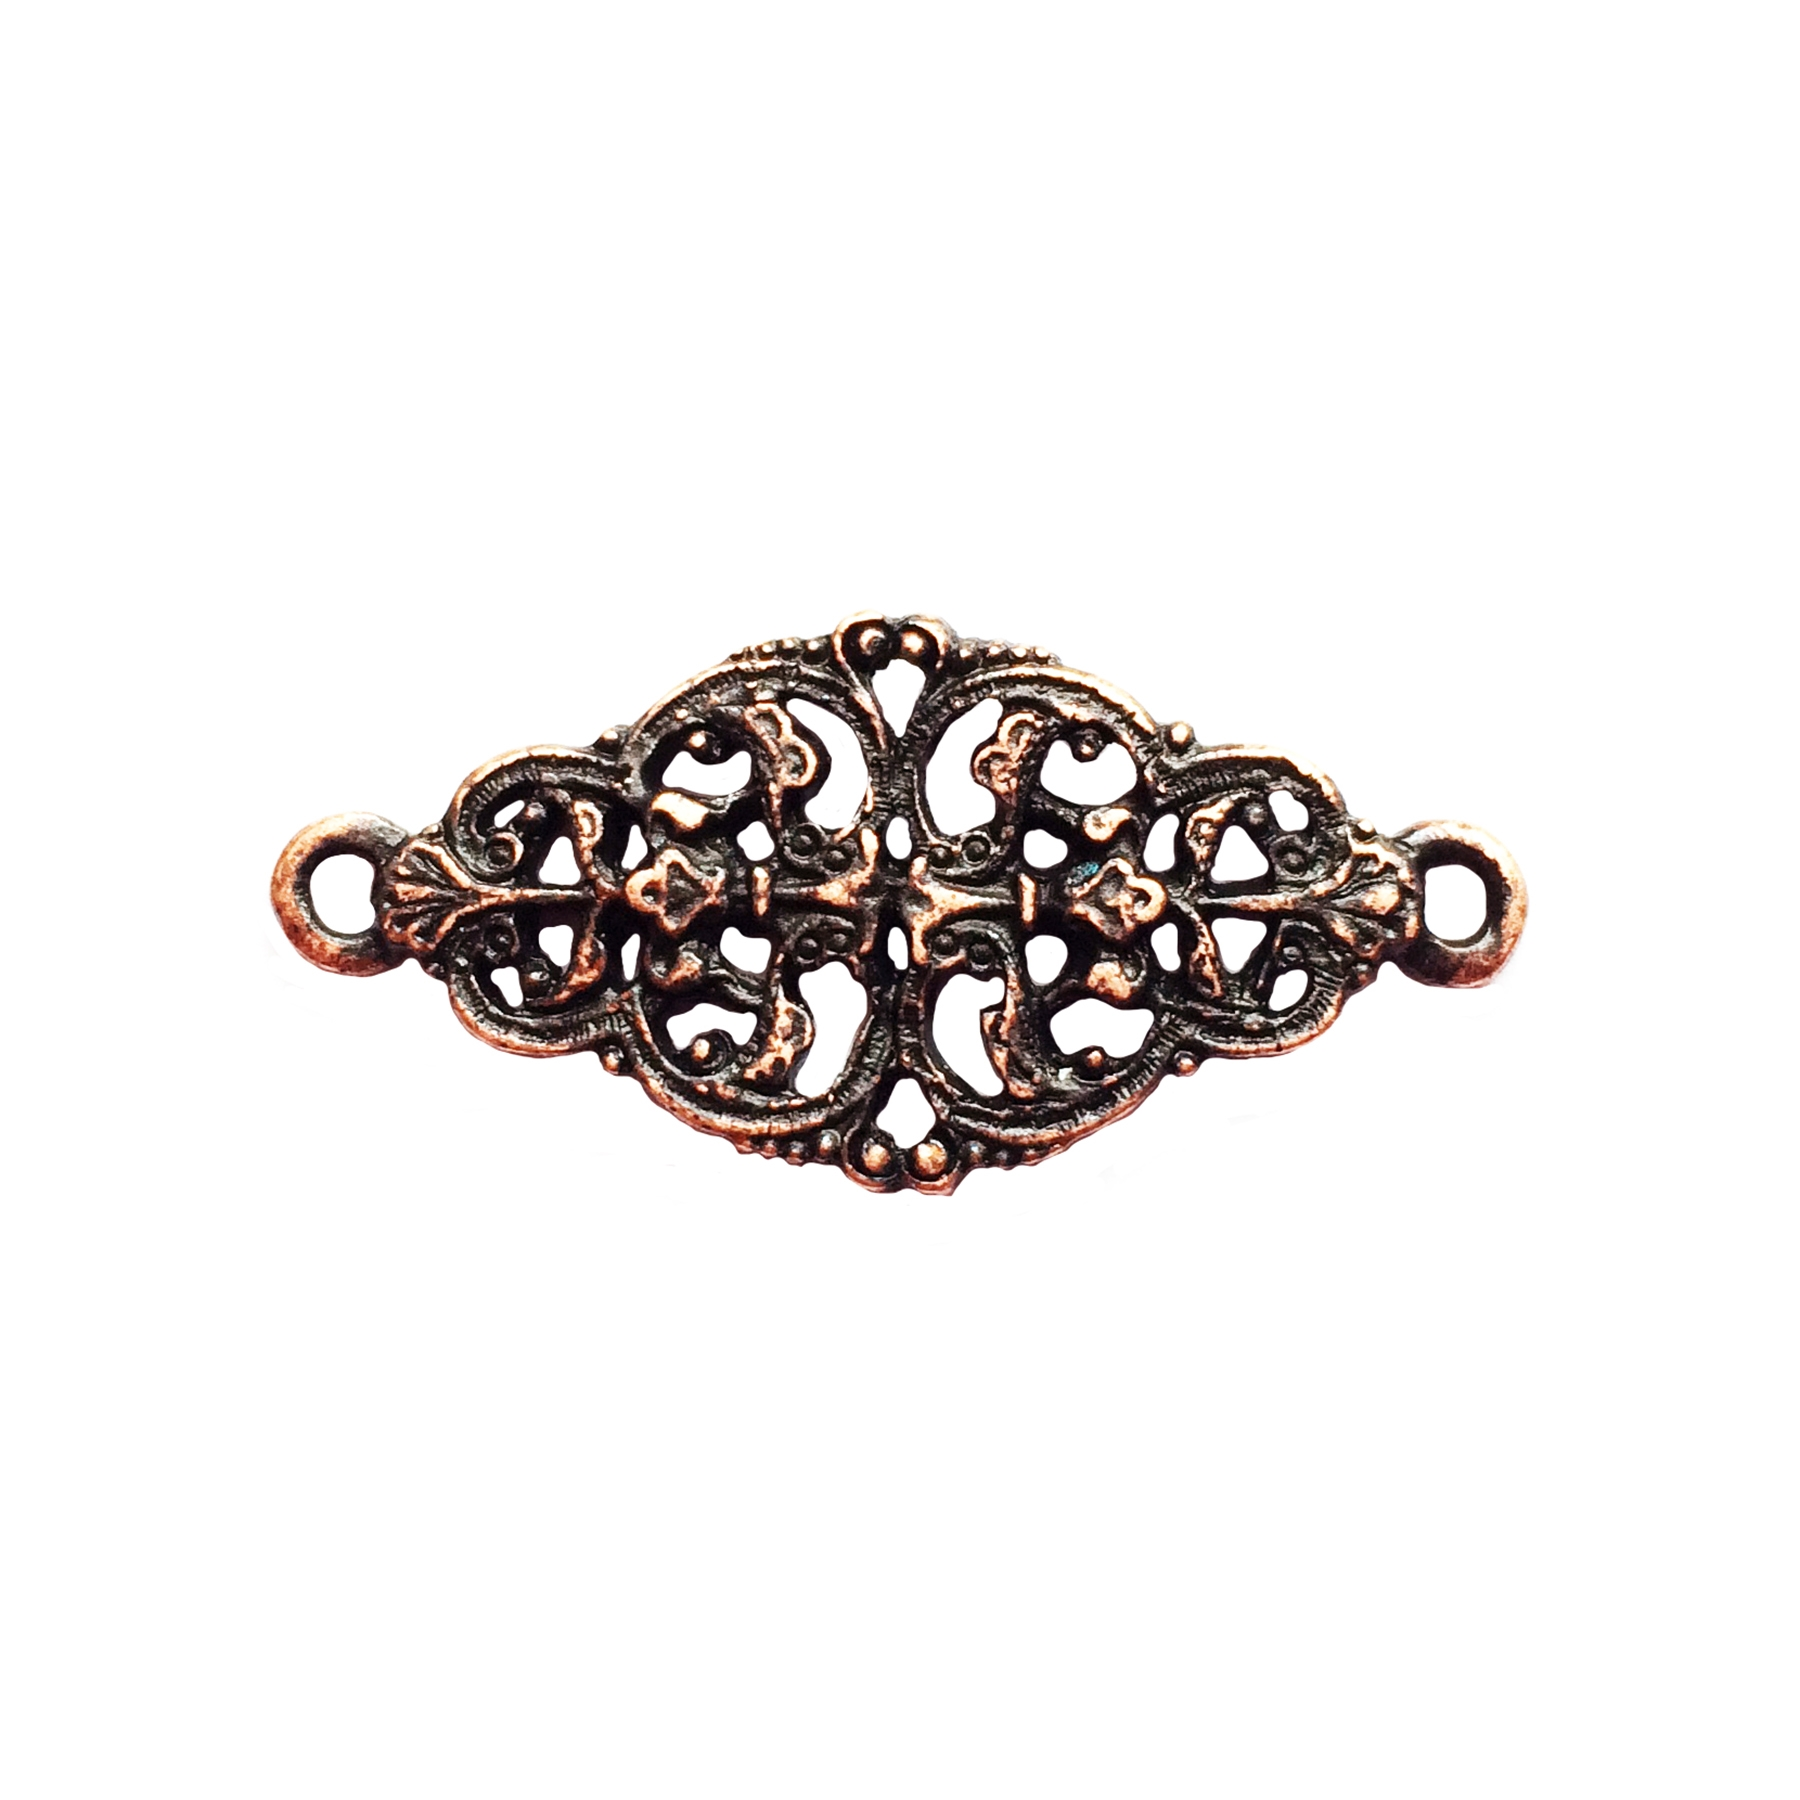 rusted iron, filigree connector, bracelet bar, 0919, bracelet connector, vintage, B'sue by 1928, lead free pewter castings, cast pewter jewelry findings, made in the USA, 1928 Company, B'sue Boutiques